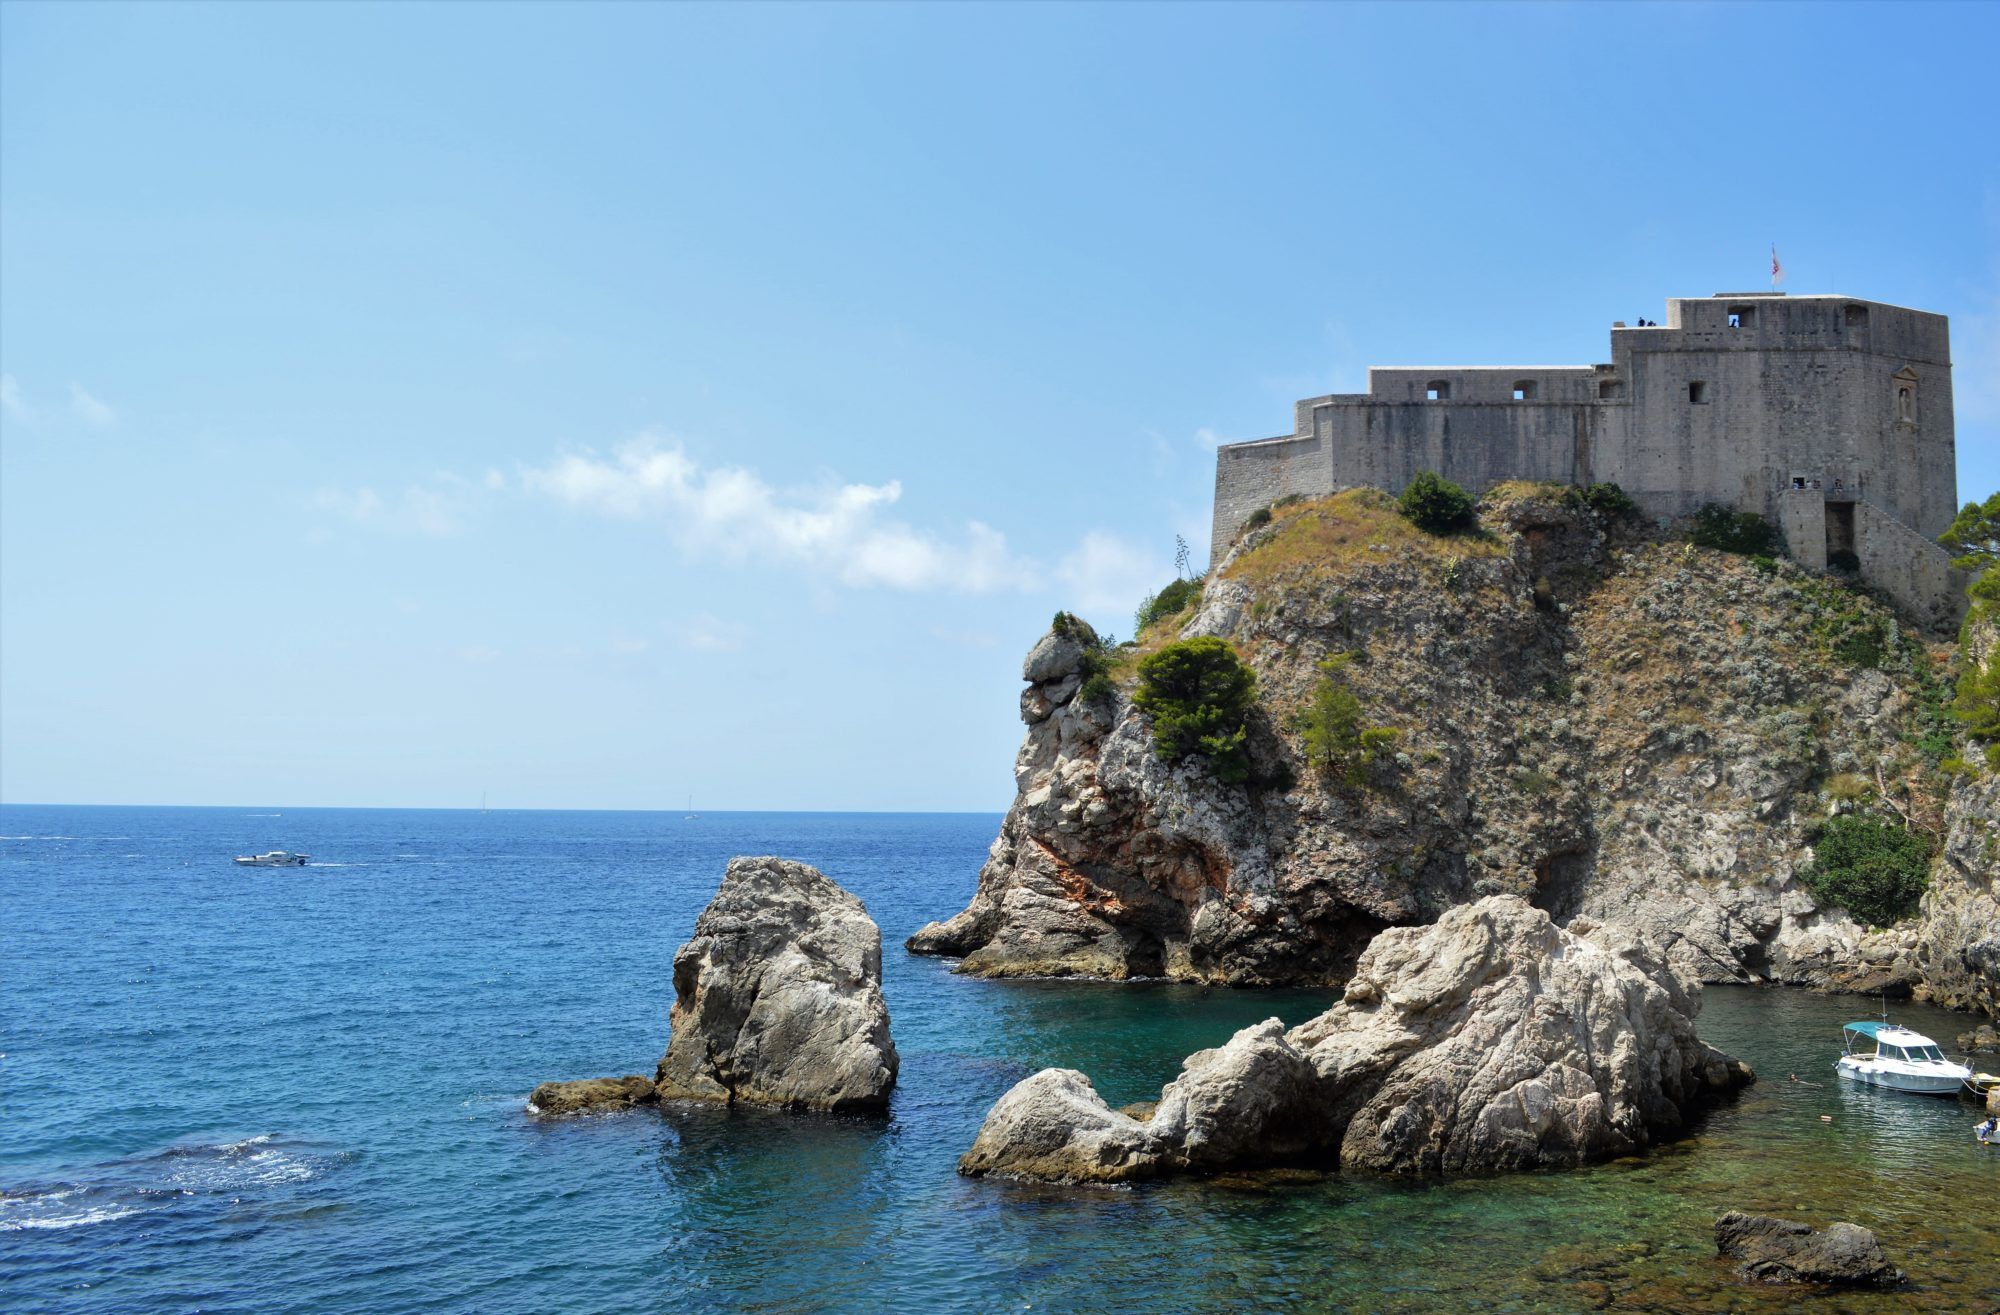 dubrovnik-games-of-throne-got